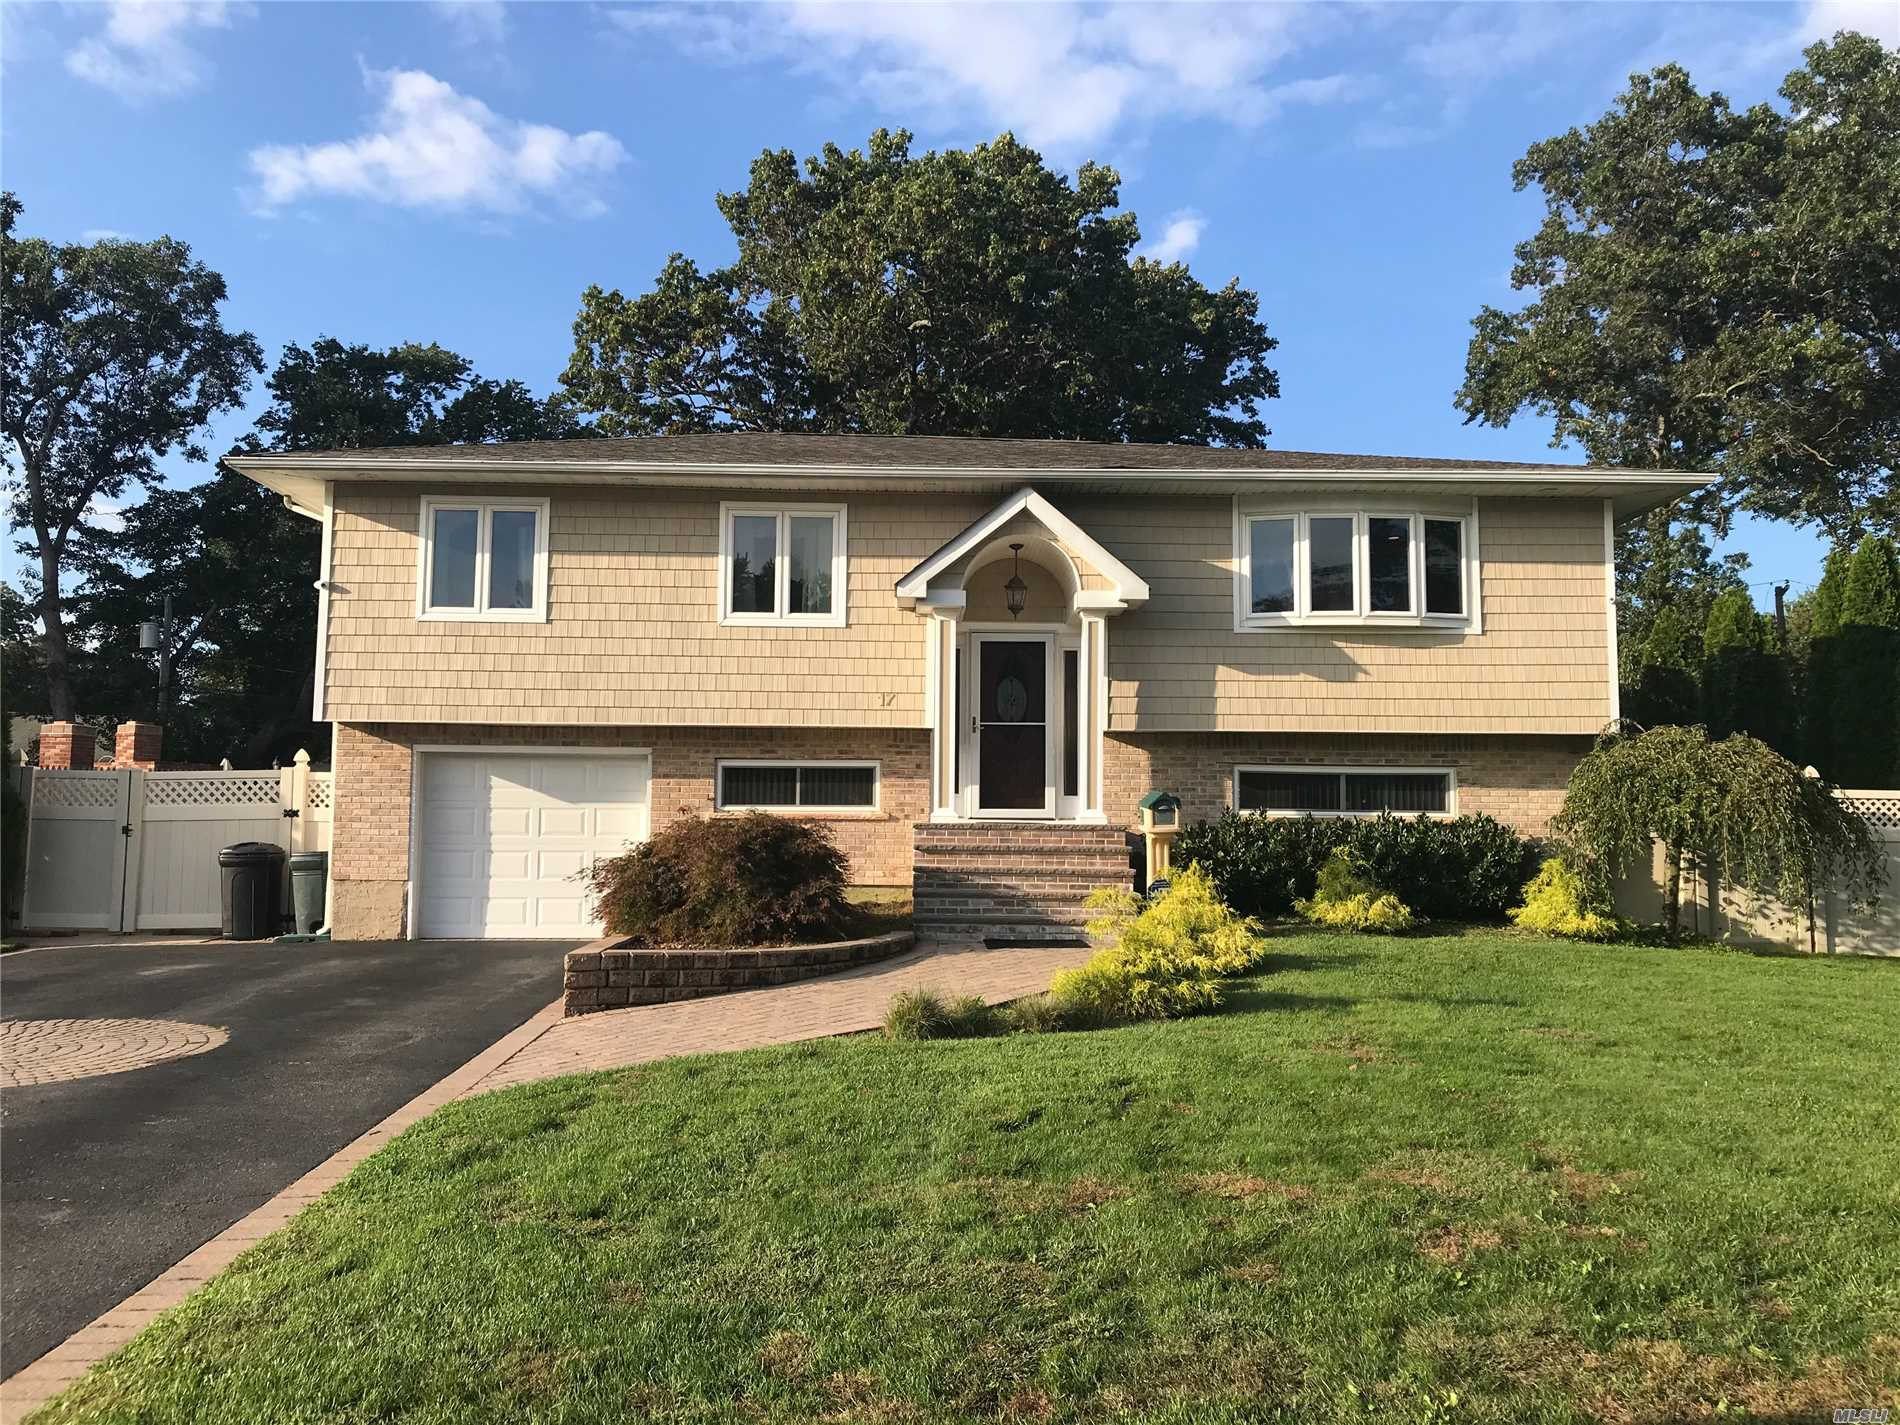 This Diamond Home Features Updated Granite Eik W/Ss Appliances & Cathedral Ceilings, New Baths, Hw Floors, New Gas Burner, New Cac, 200 Amp Elec W/Generator Hookup, New Roof(1 Layer), Cameras & Igs! Gorgeous Country Club Yard W/Igp & Outdoor Bbq Island! Mt. Pleasant Elem, Great Hollow Middle & Hs West ! Beautiful Quiet Neighborhood!